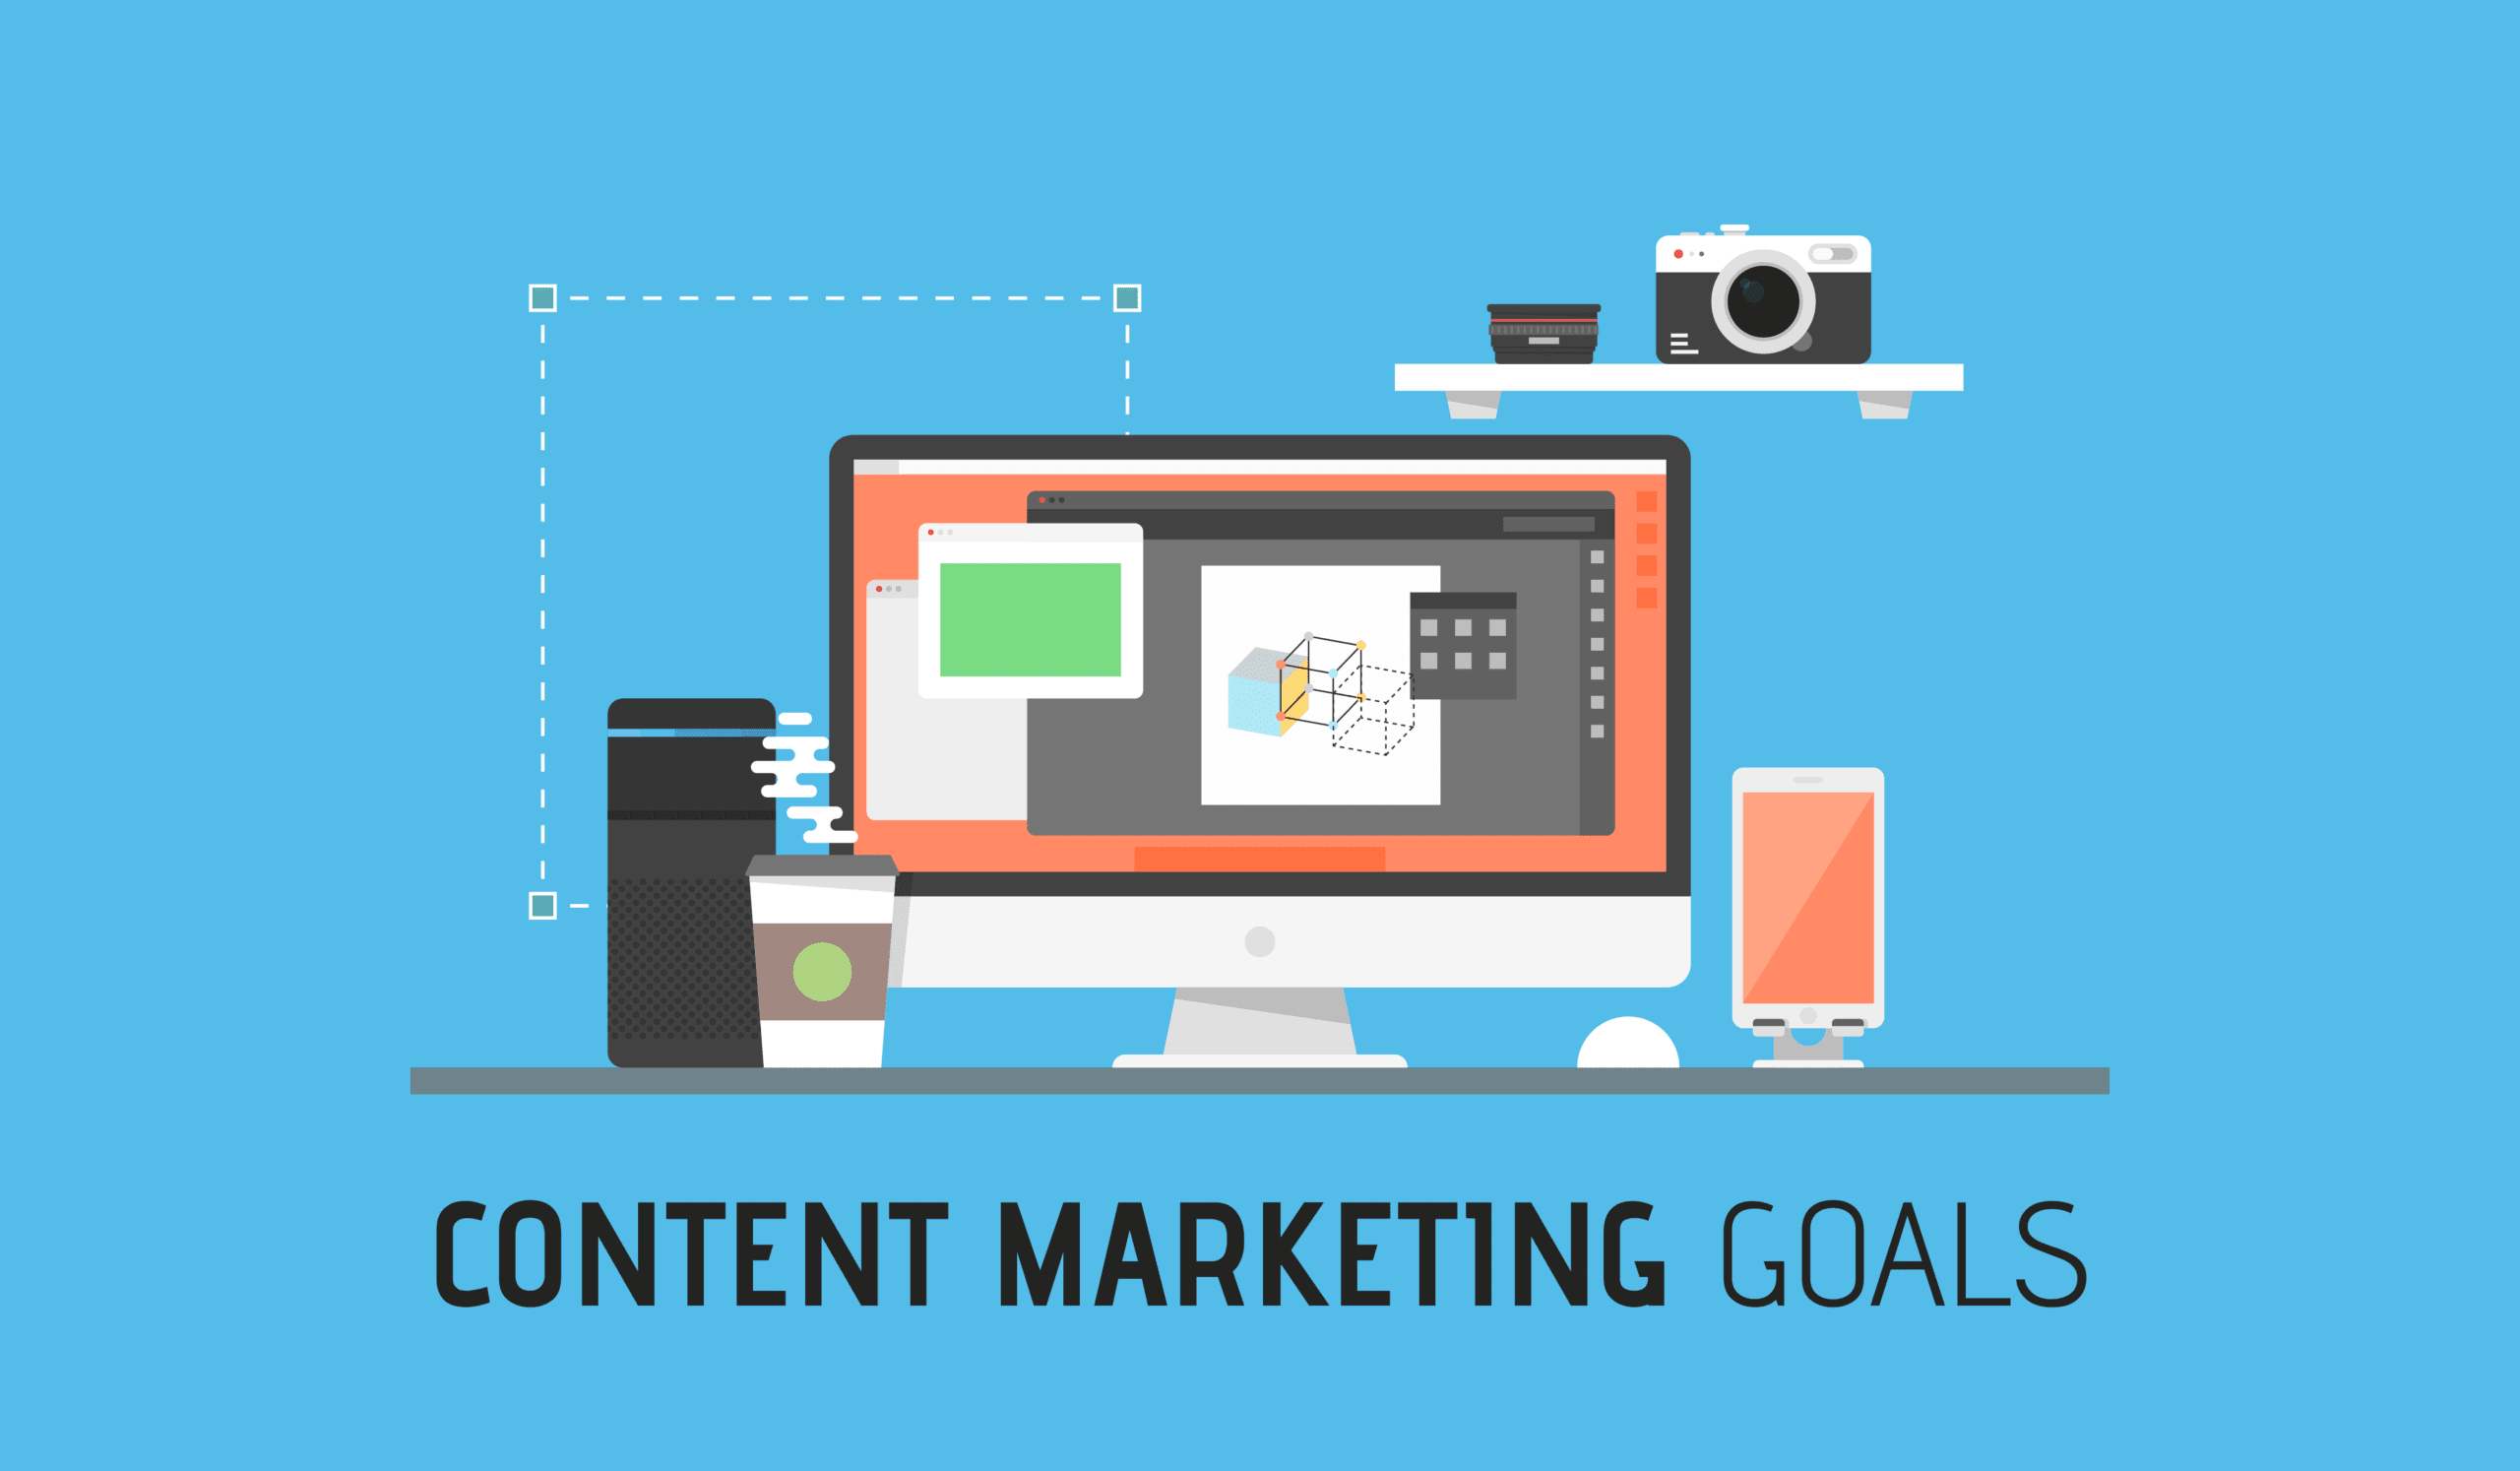 How To Set Content Marketing Goals And Objectives Cover Photo With Digital Brand On Computer.